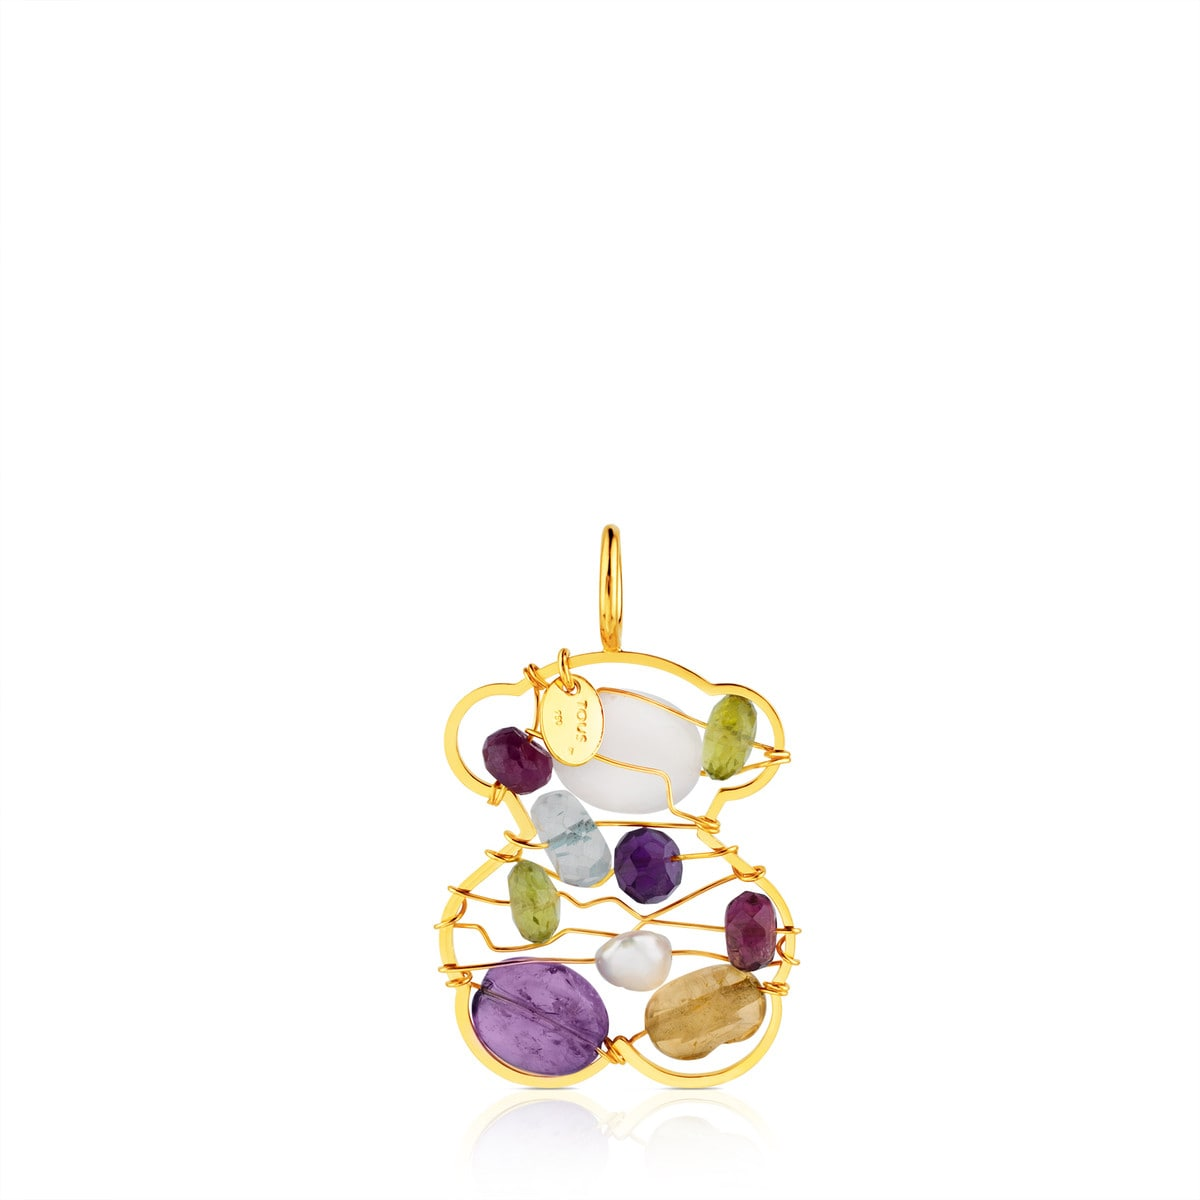 Gold Garabato Pendant with Gemstones